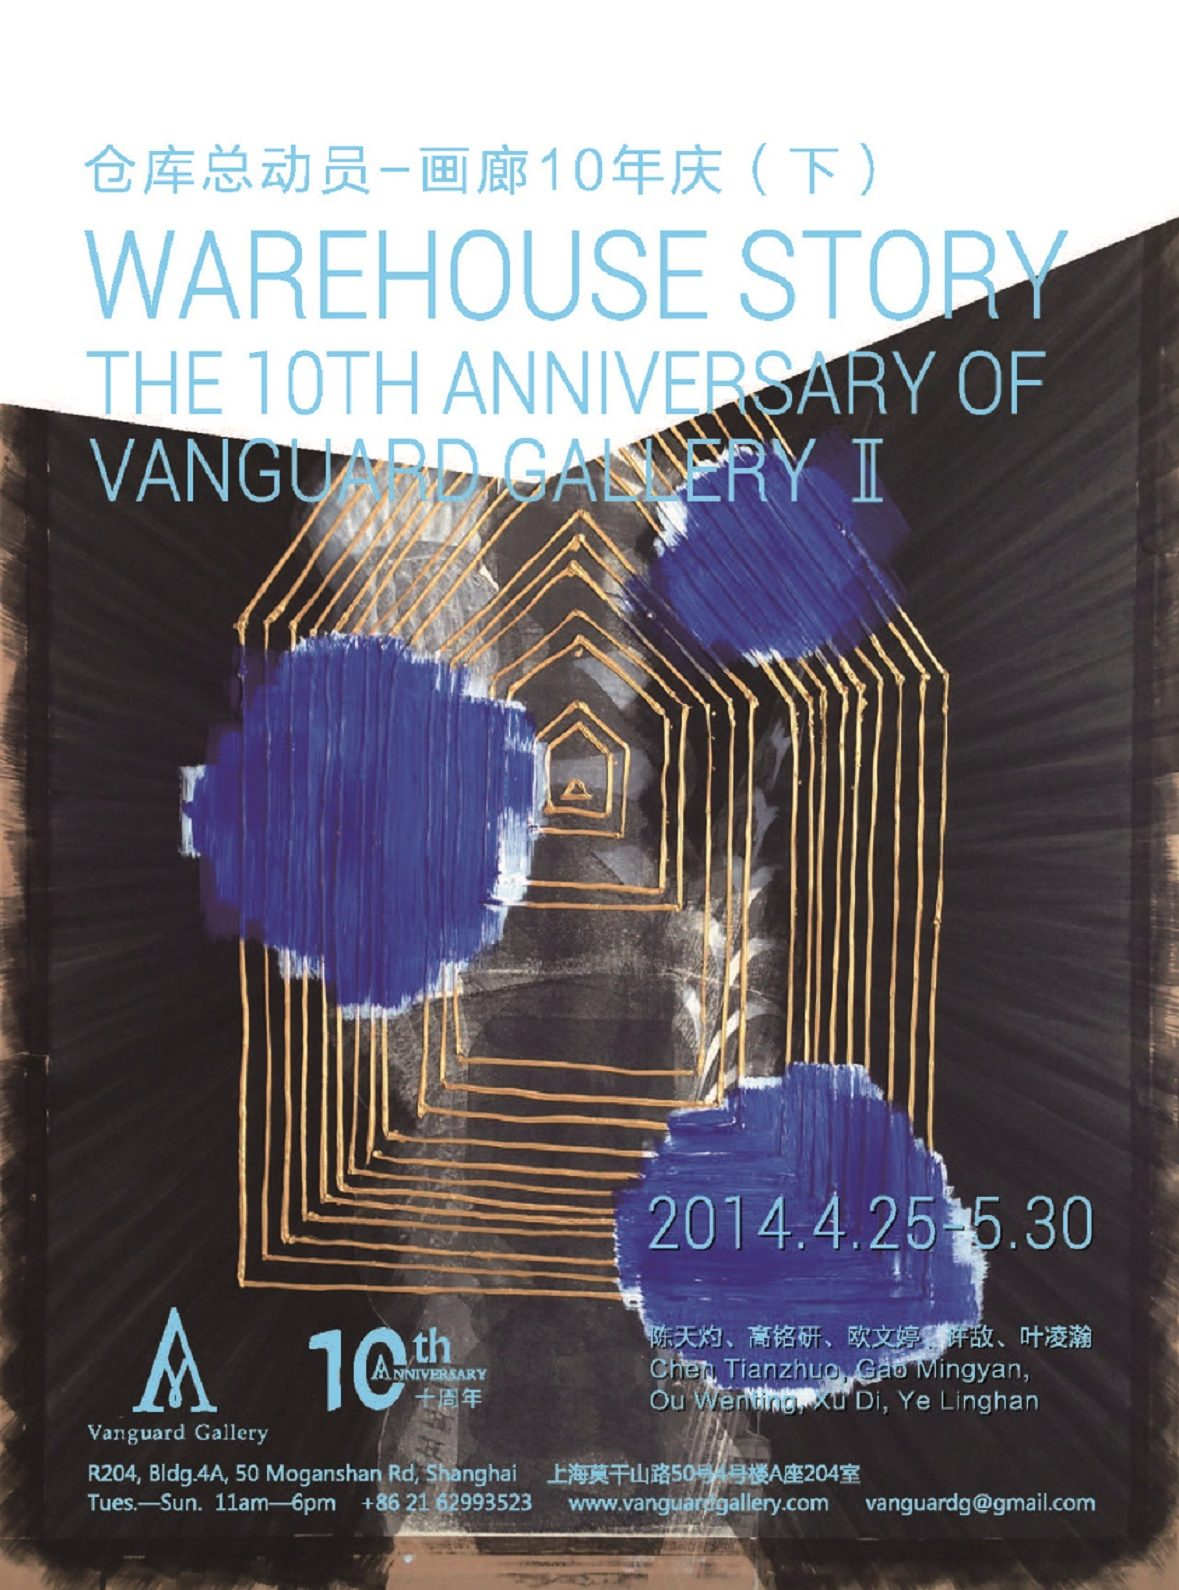 Warehouse Story – The 10th Anniversary of Vanguard Gallery Ⅱ